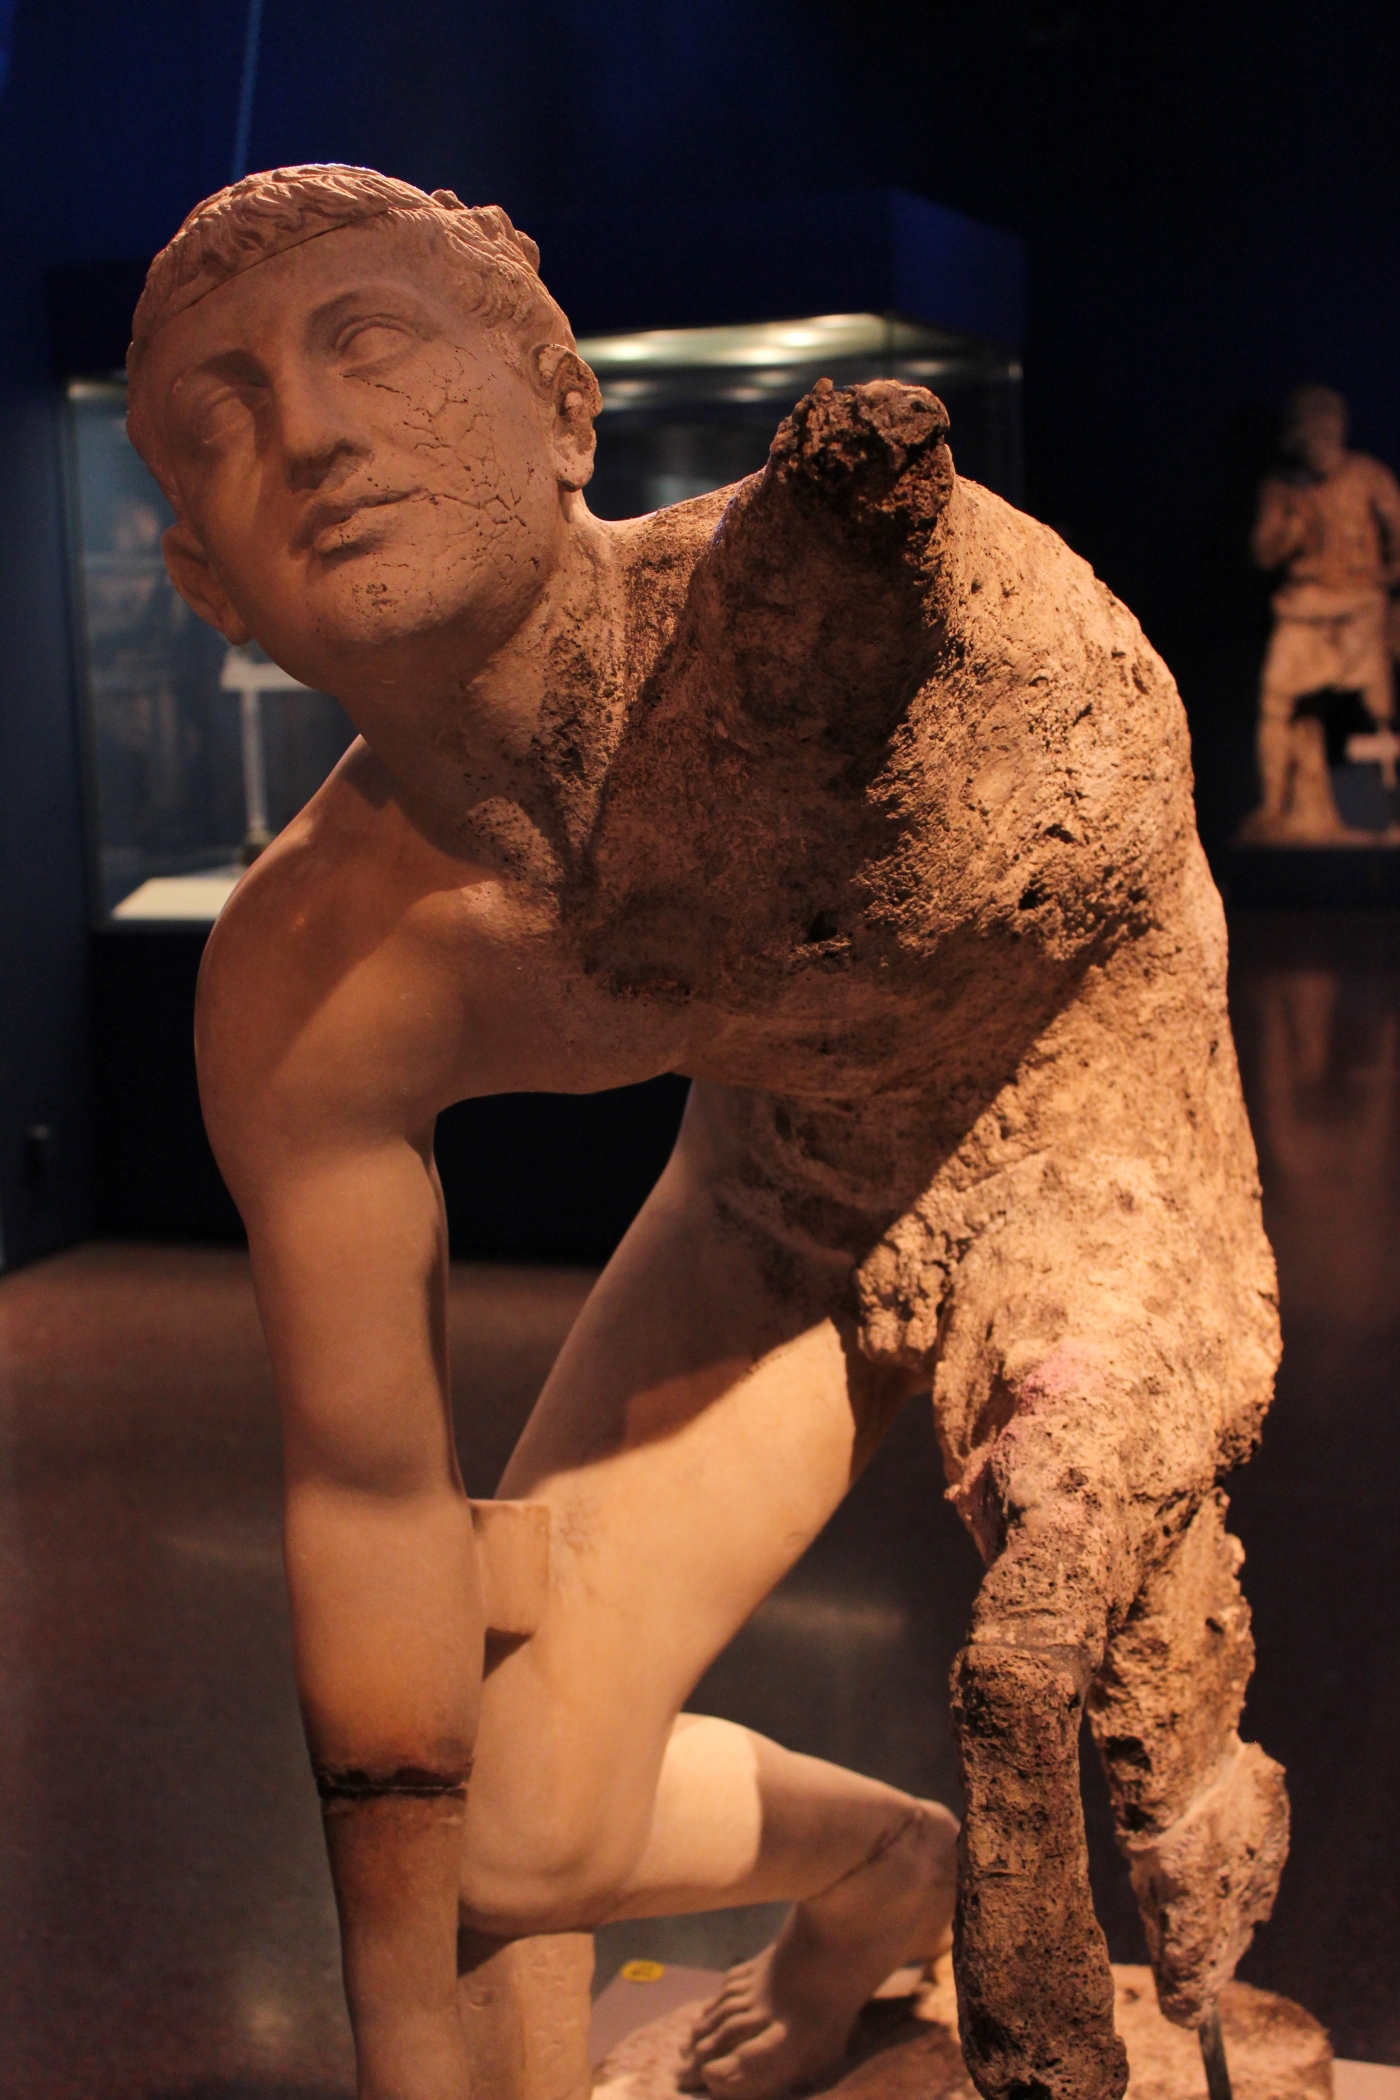 The Wrestler of the Antikythera Shipwreck